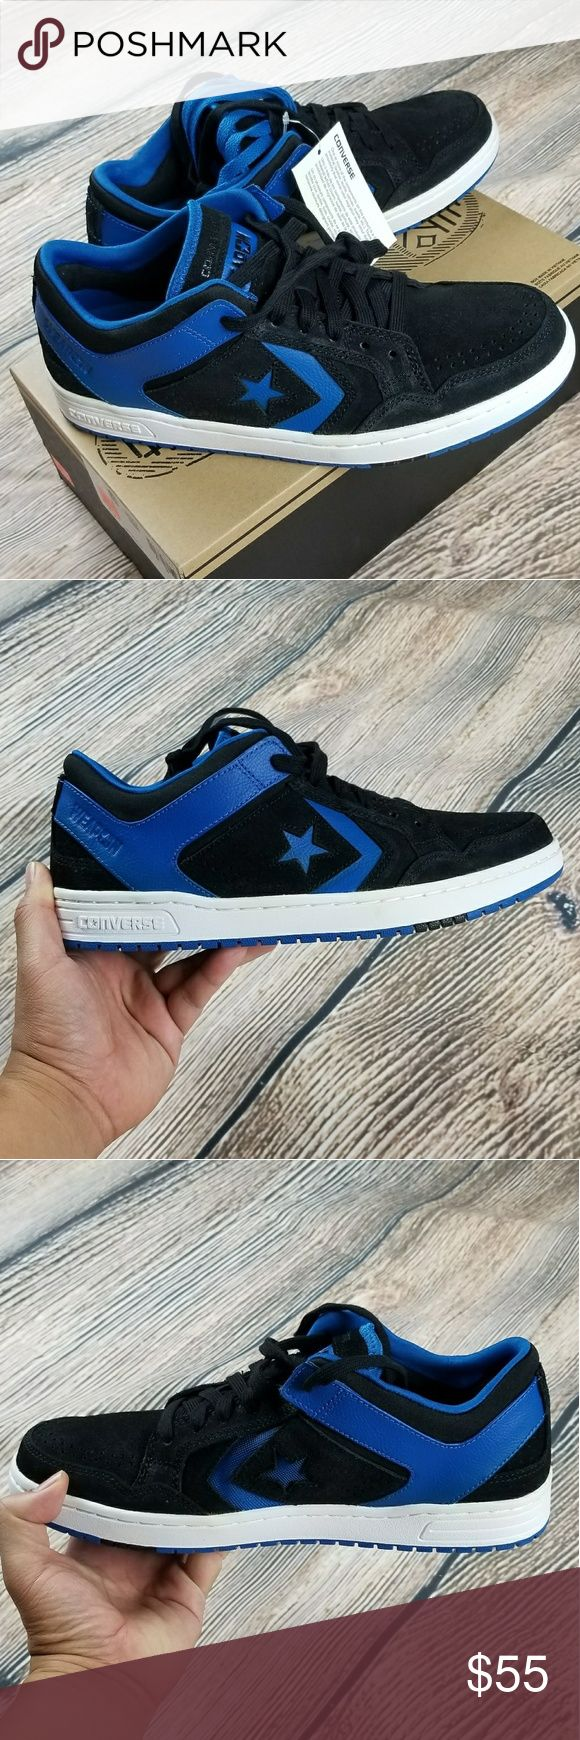 *NWT* CONVERSE Weapon sneakers *NWT* CONVERSE Weapon Skate Ox Larkspur / Black sneakers. Comes with extra pair of blue shoe lace.  Size: 11 Color: Blue/black Retail: $85  Note: New shoes comes with box but NO lid. Converse Shoes Sneakers